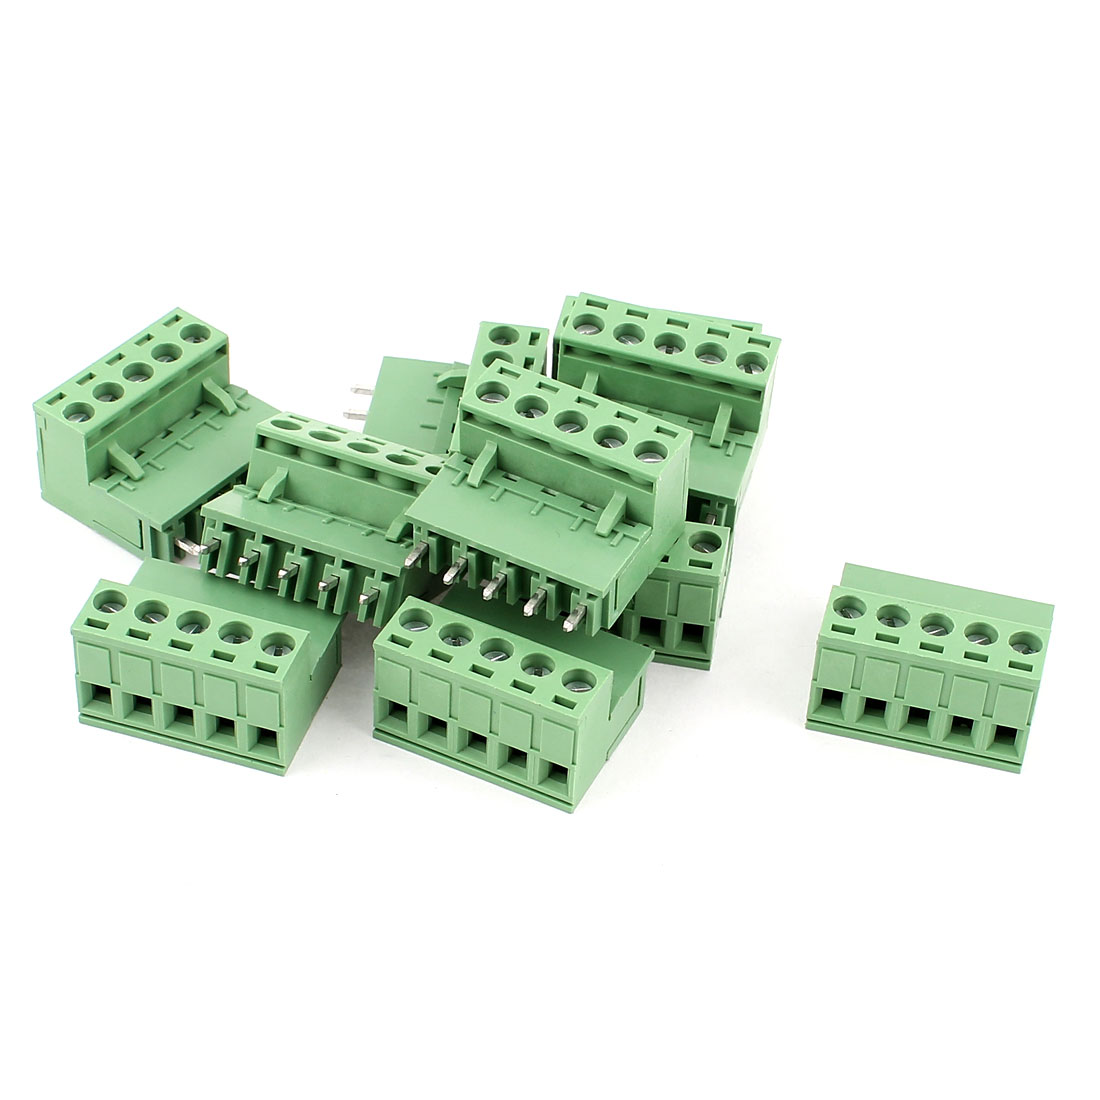 10 Pcs AC 300V 10A 5 Pins PCB Terminal Block Connector 5.08mm Pitch Green